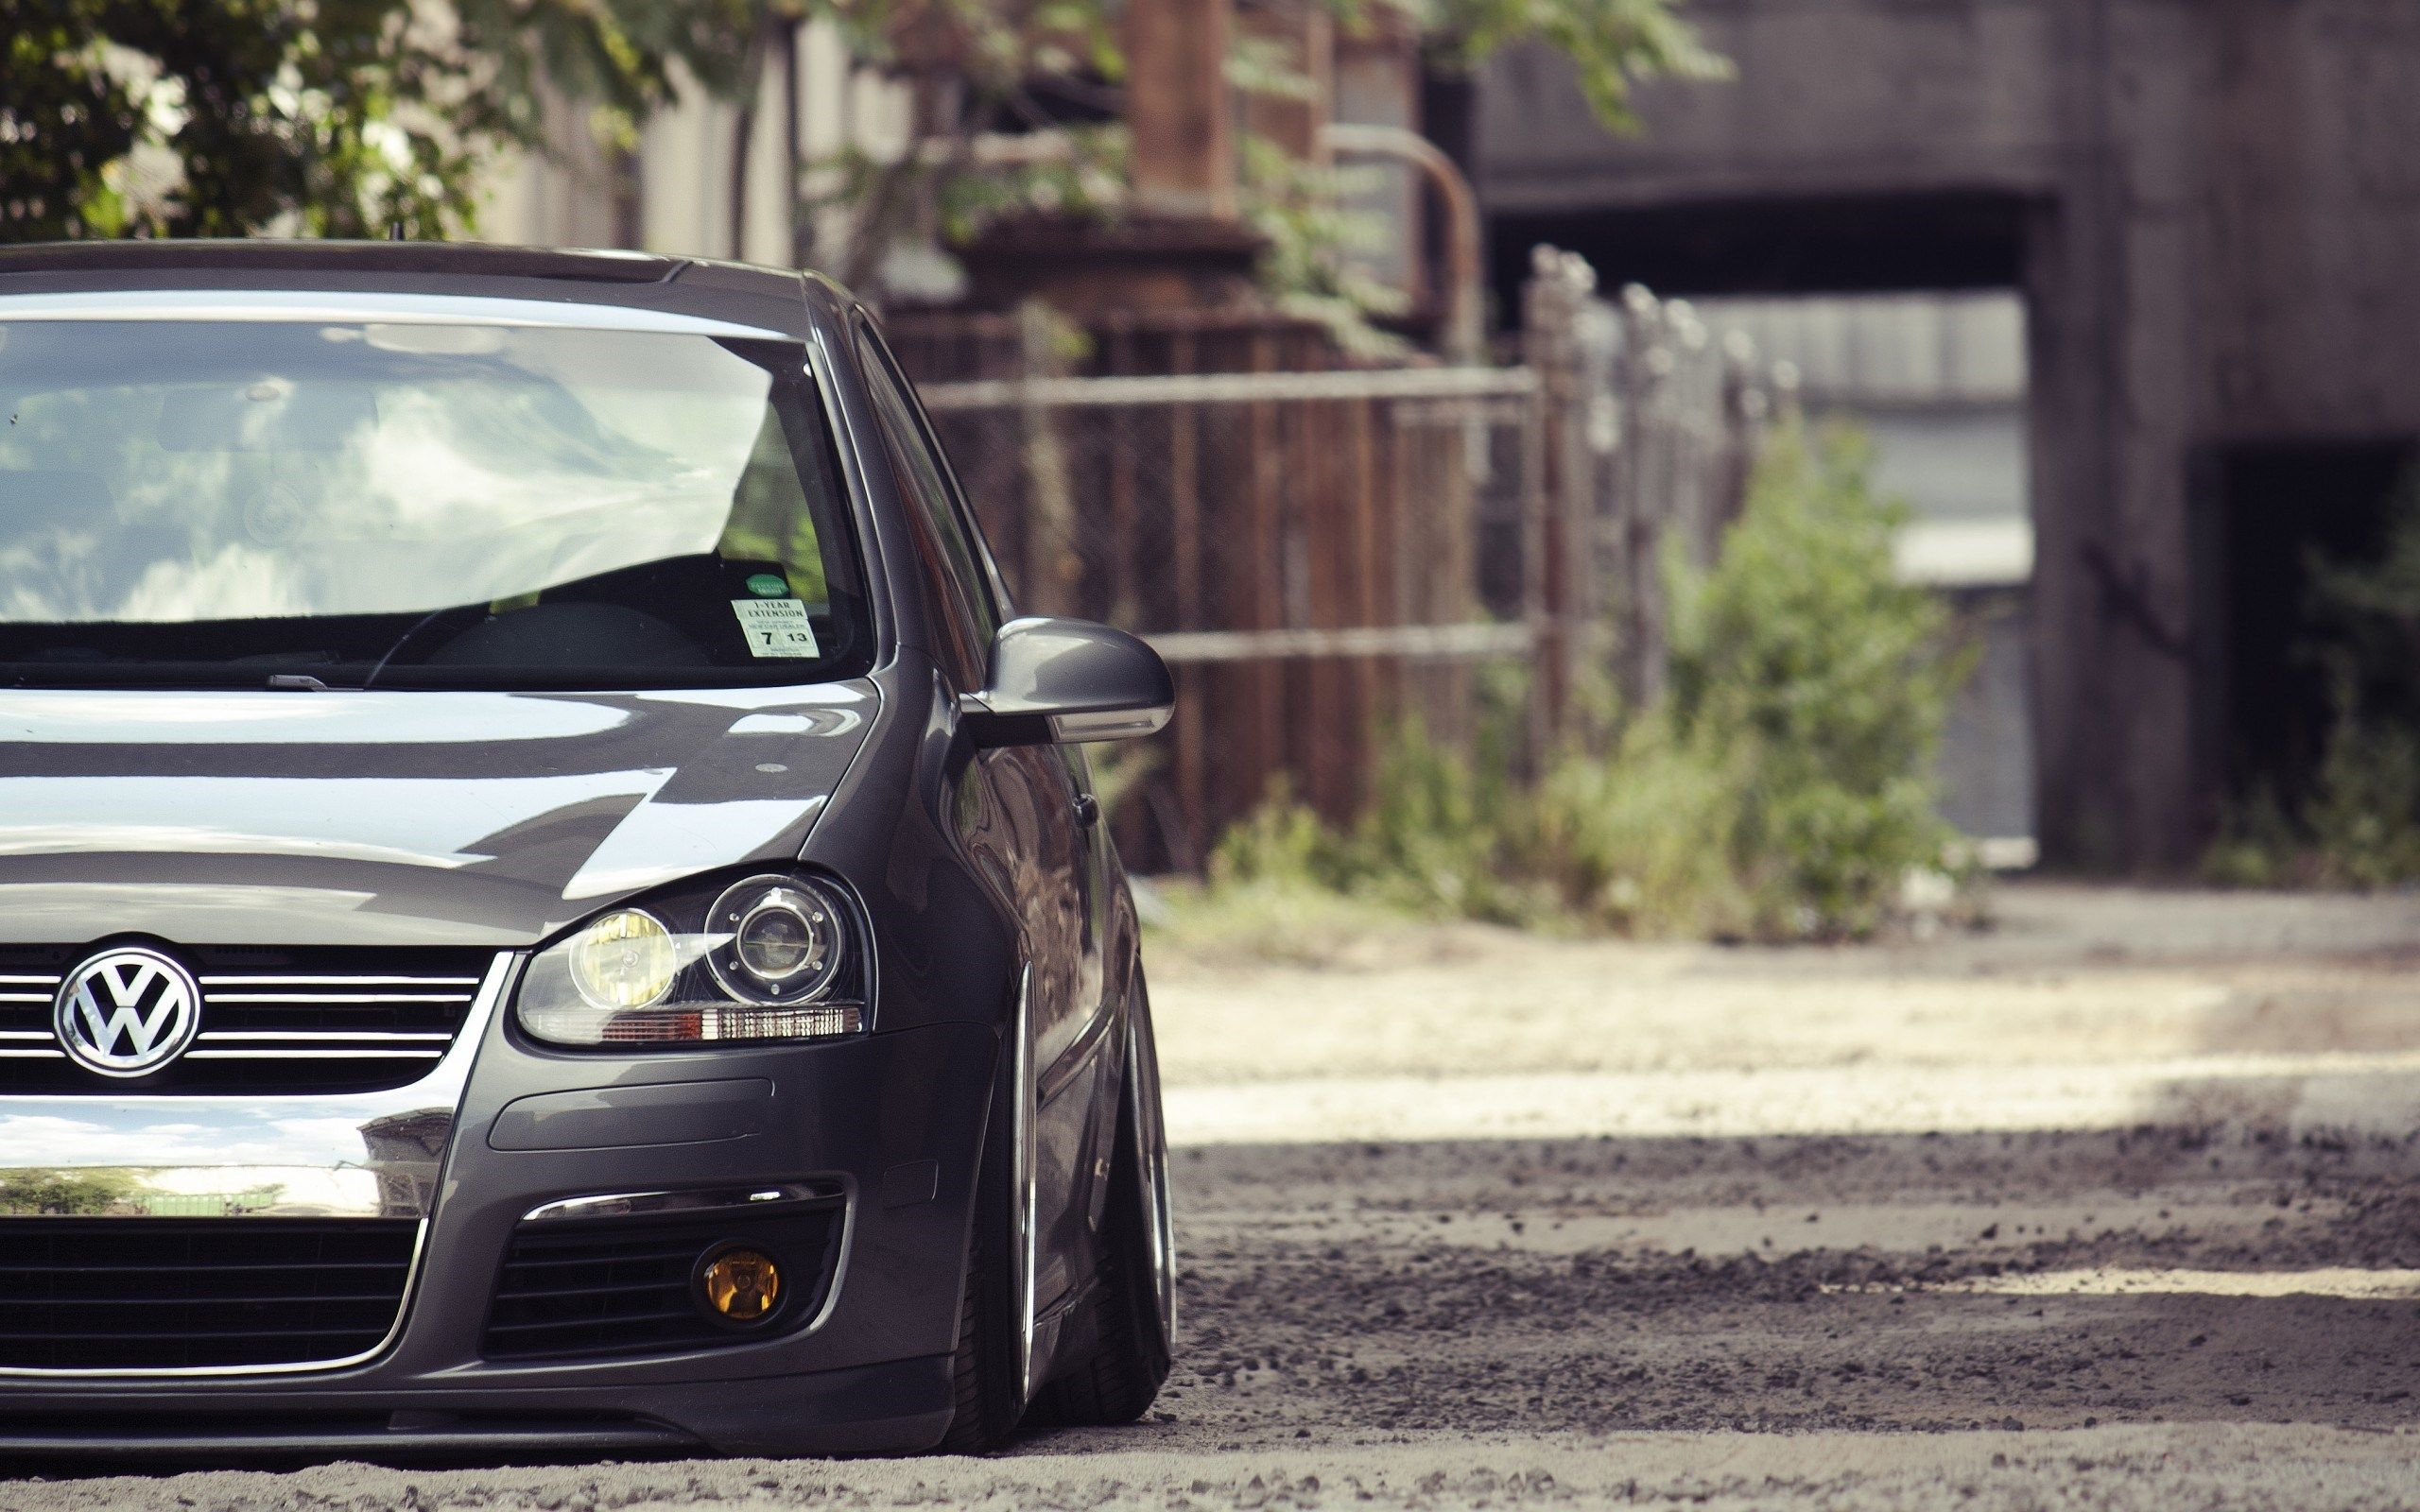 Beau Volkswagen Golf I Red | HD Cars Wallpapers | Volkswagen HD Wallpaper |  Pinterest | Volkswagen Golf, Volkswagen And Car Wallpapers